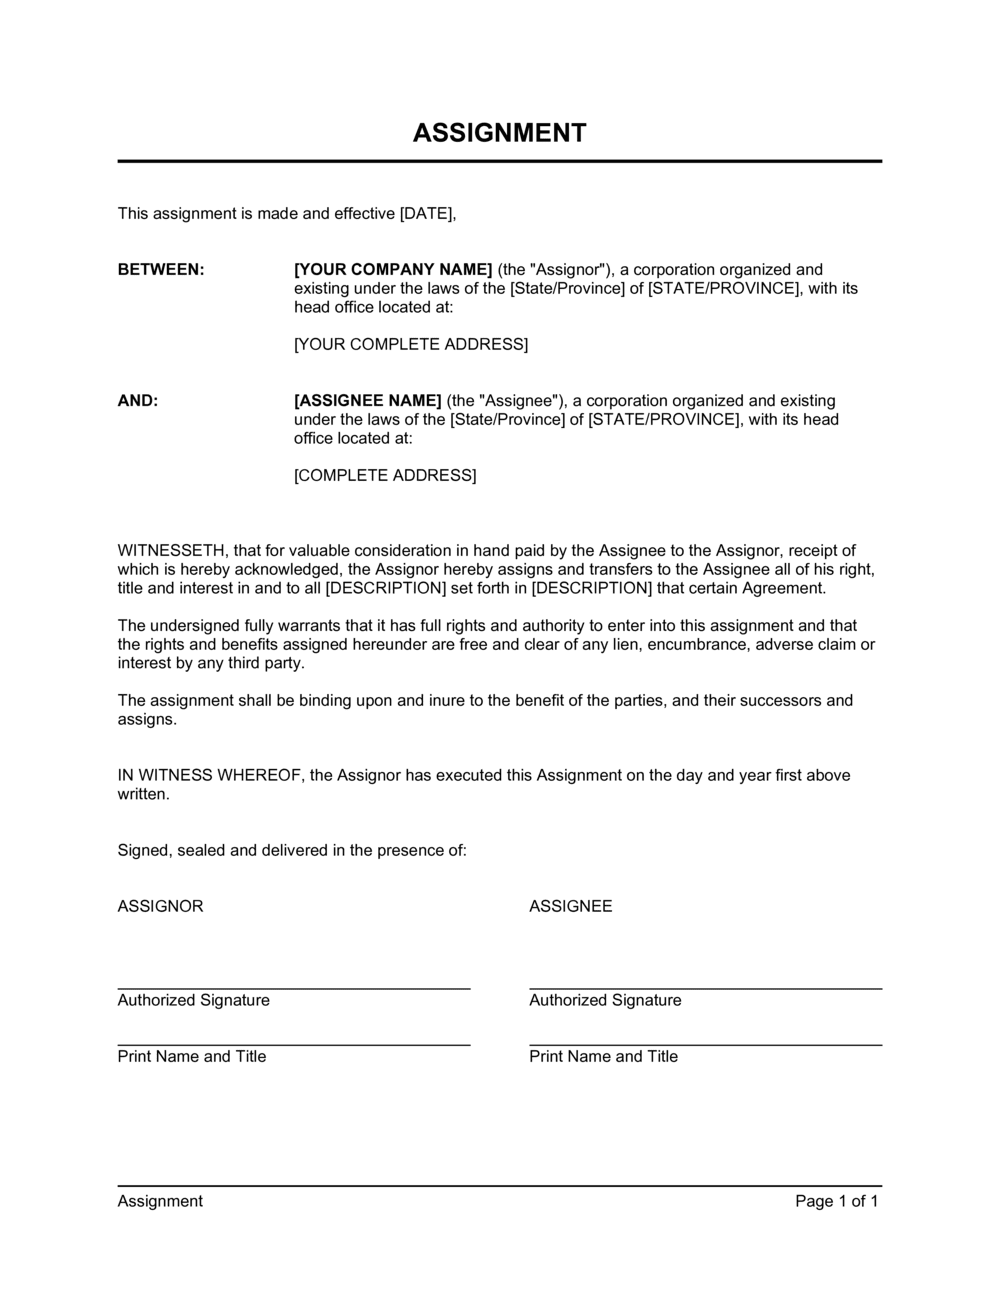 Business-in-a-Box's Assignment Template